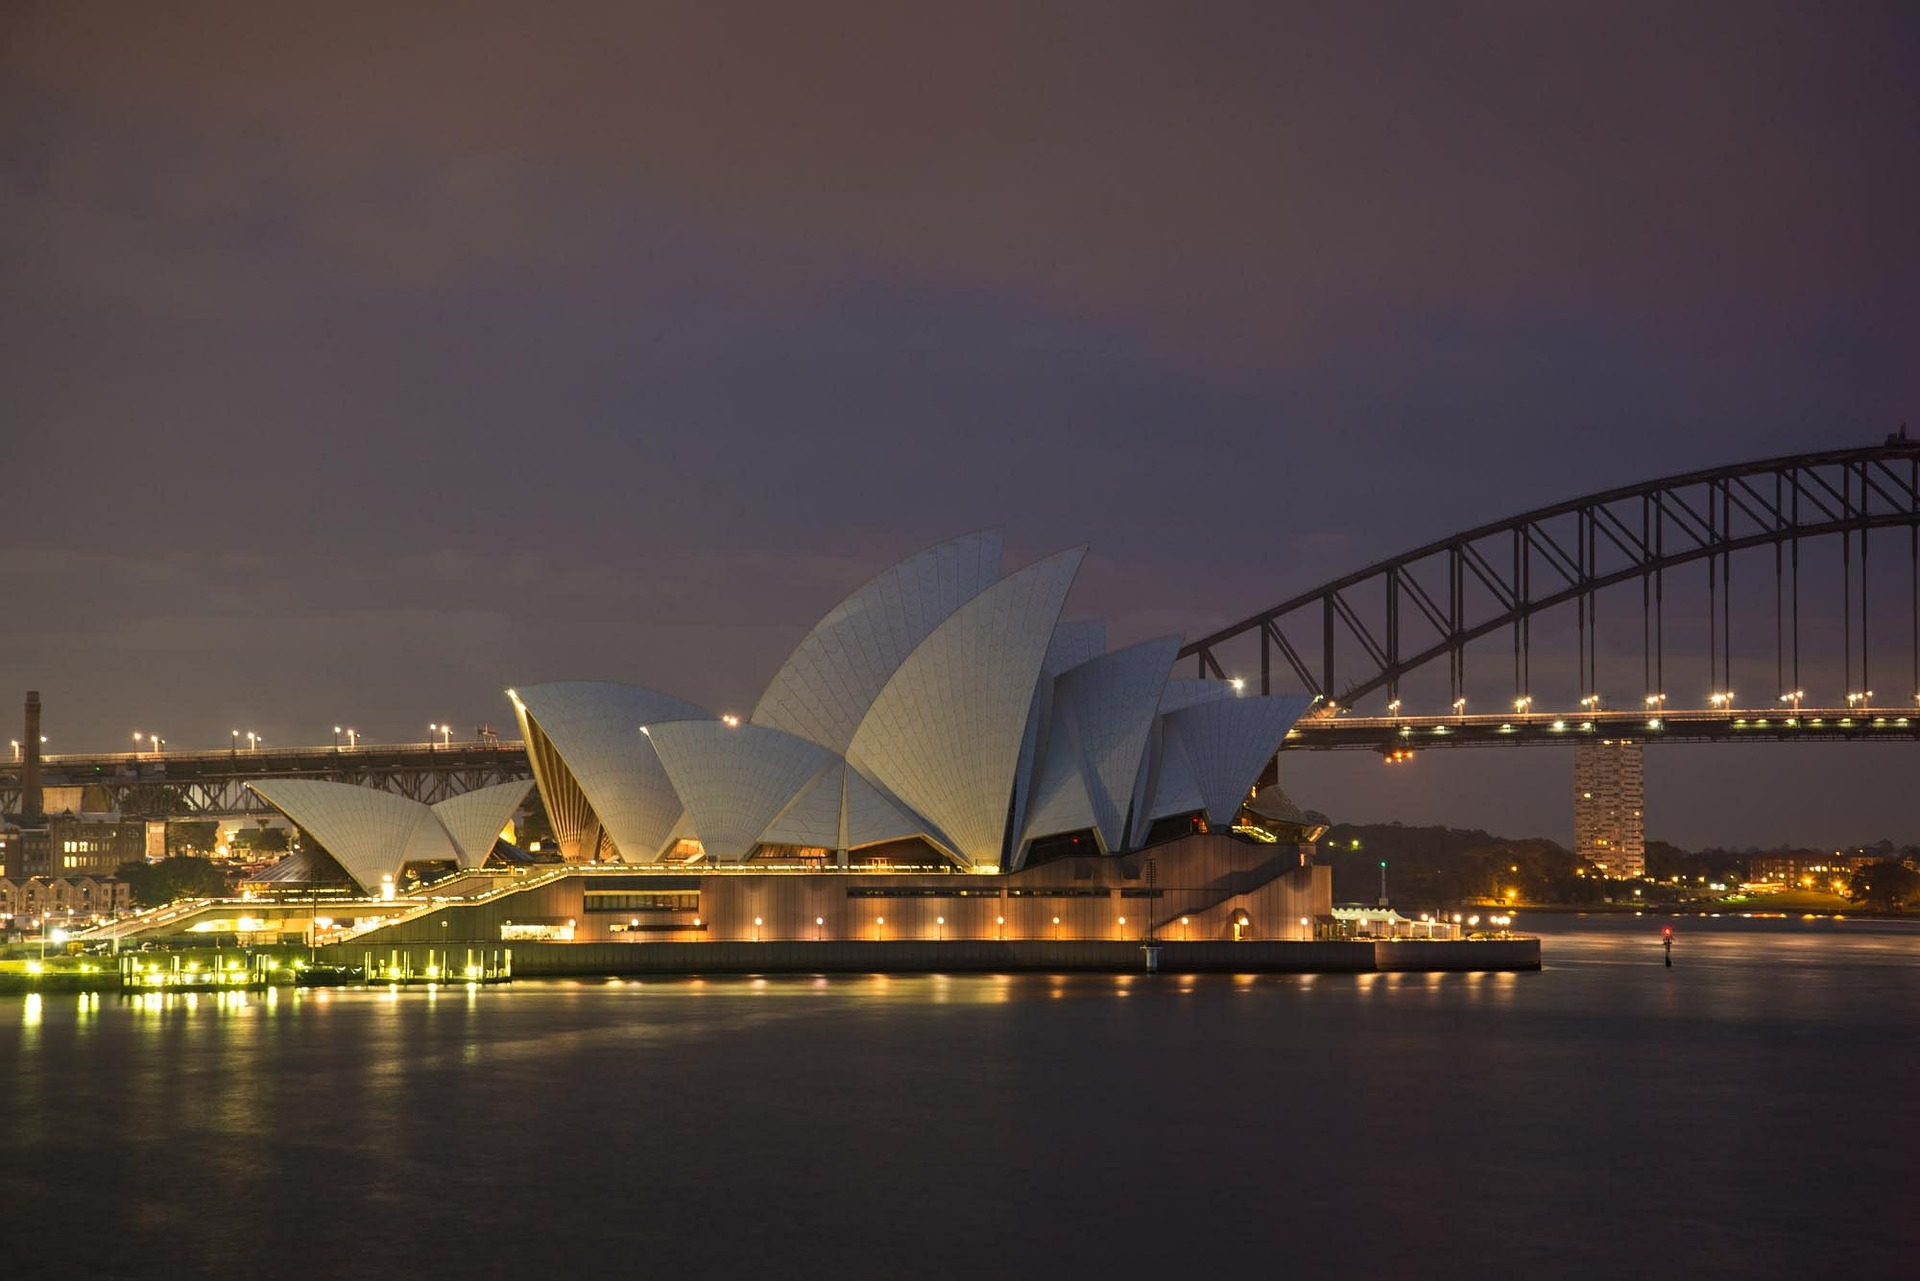 Sydney Opera House and the Sydney Harbour Bridge, Australia